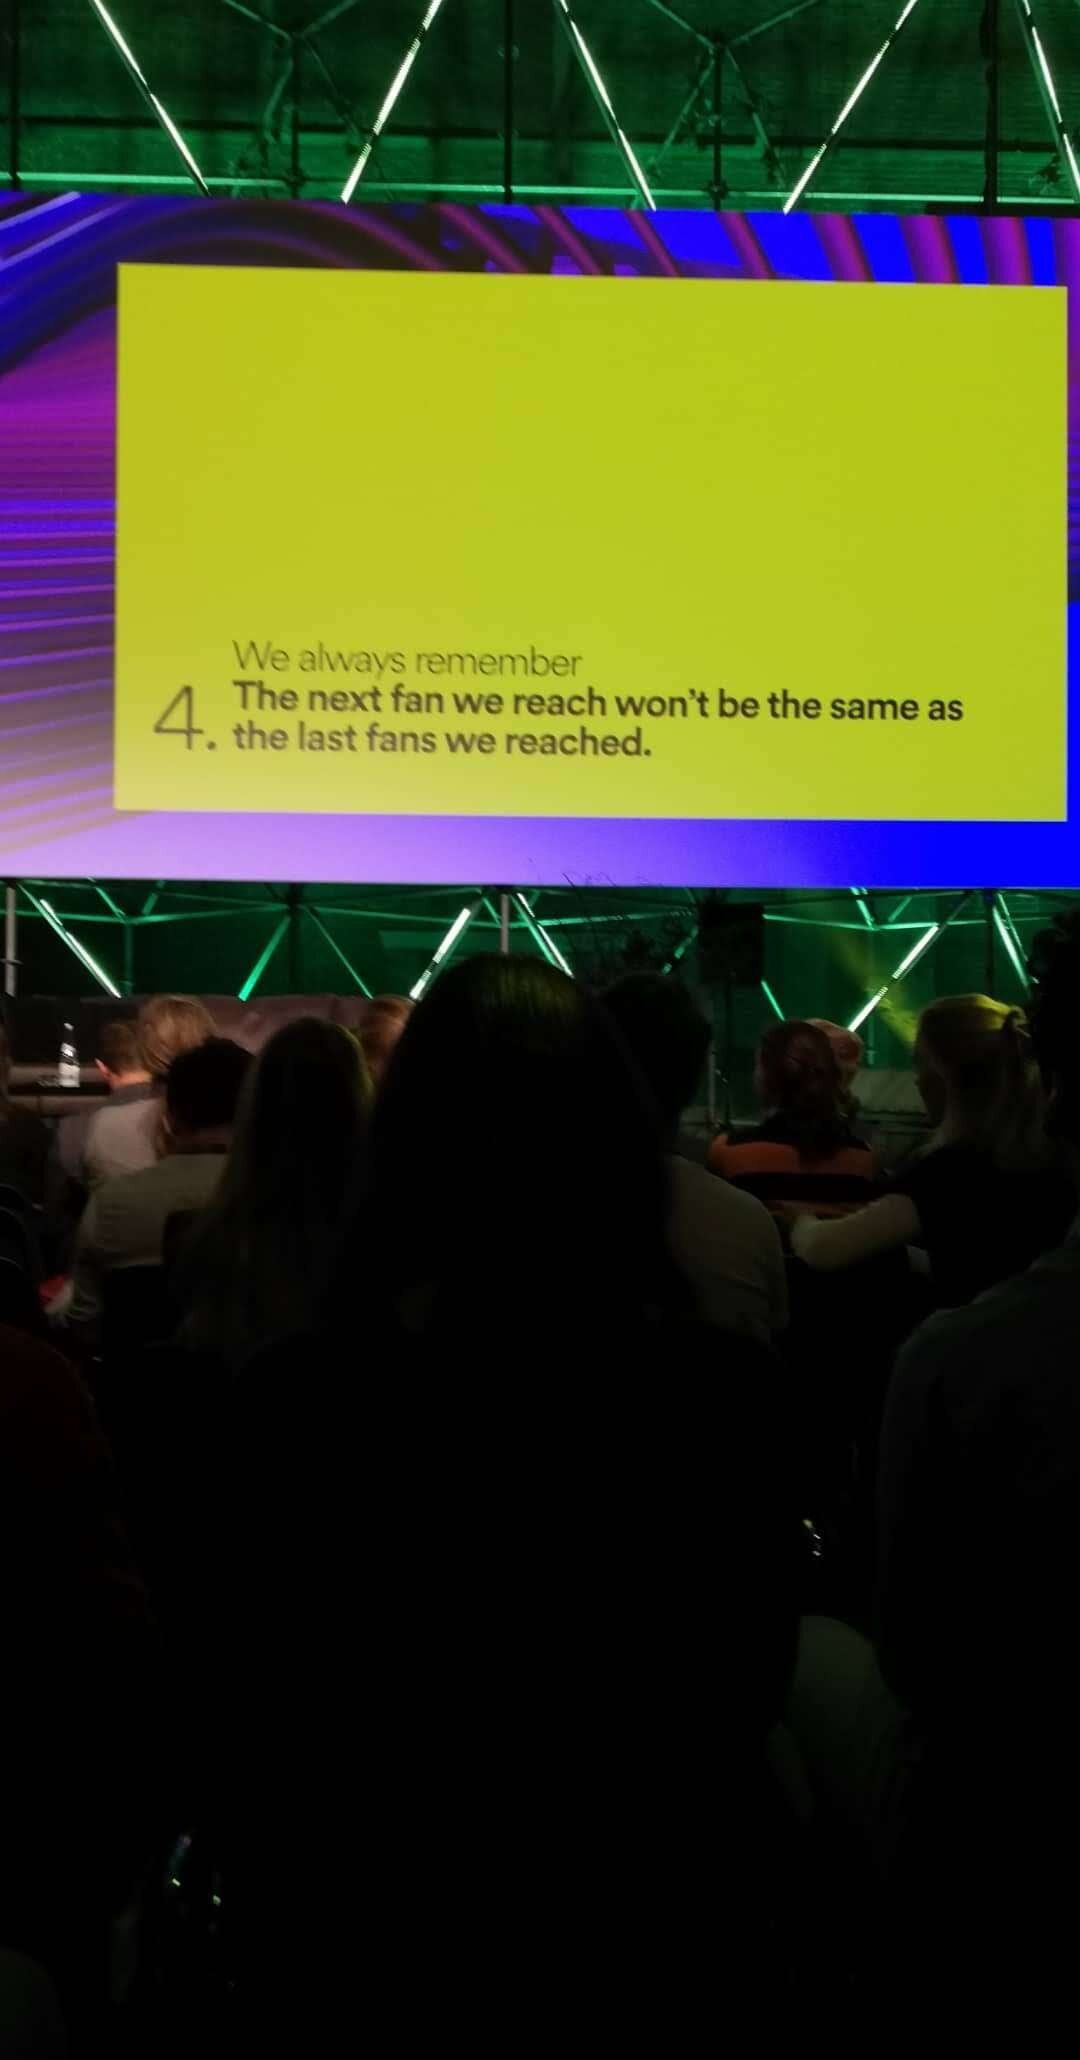 Don't count on your current audience to inform your new customers. Always be on the lookout for new people, never accept one 'final audience' as the the perfect fit, you might be missing out.